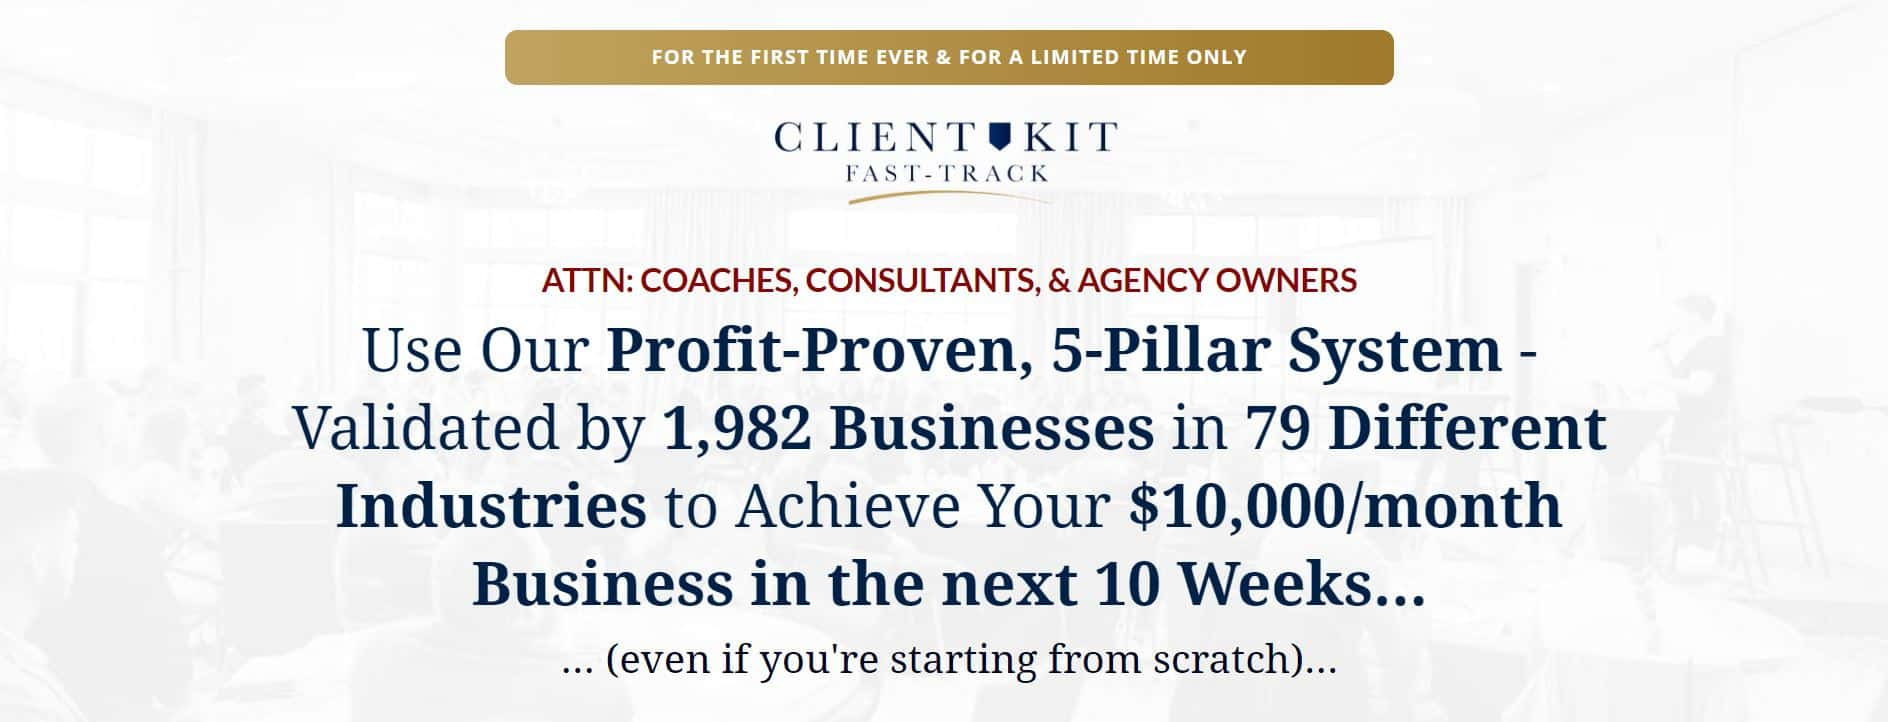 Traffic and Funnels - Client Kit Fast-Track